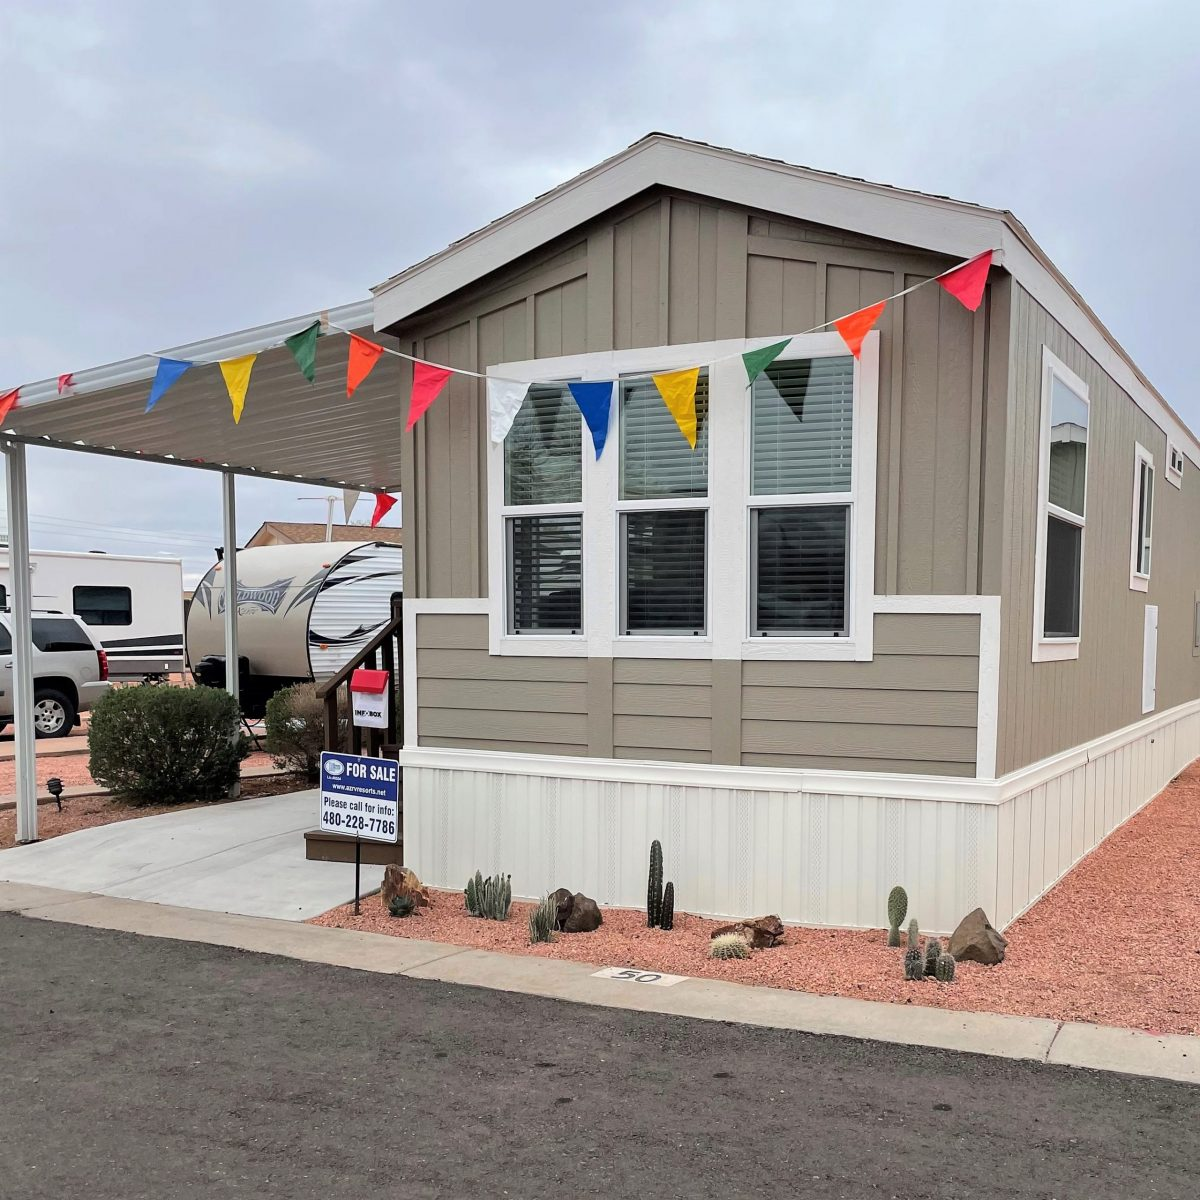 Mobilehome on redrock lot with cacti, for sale sign